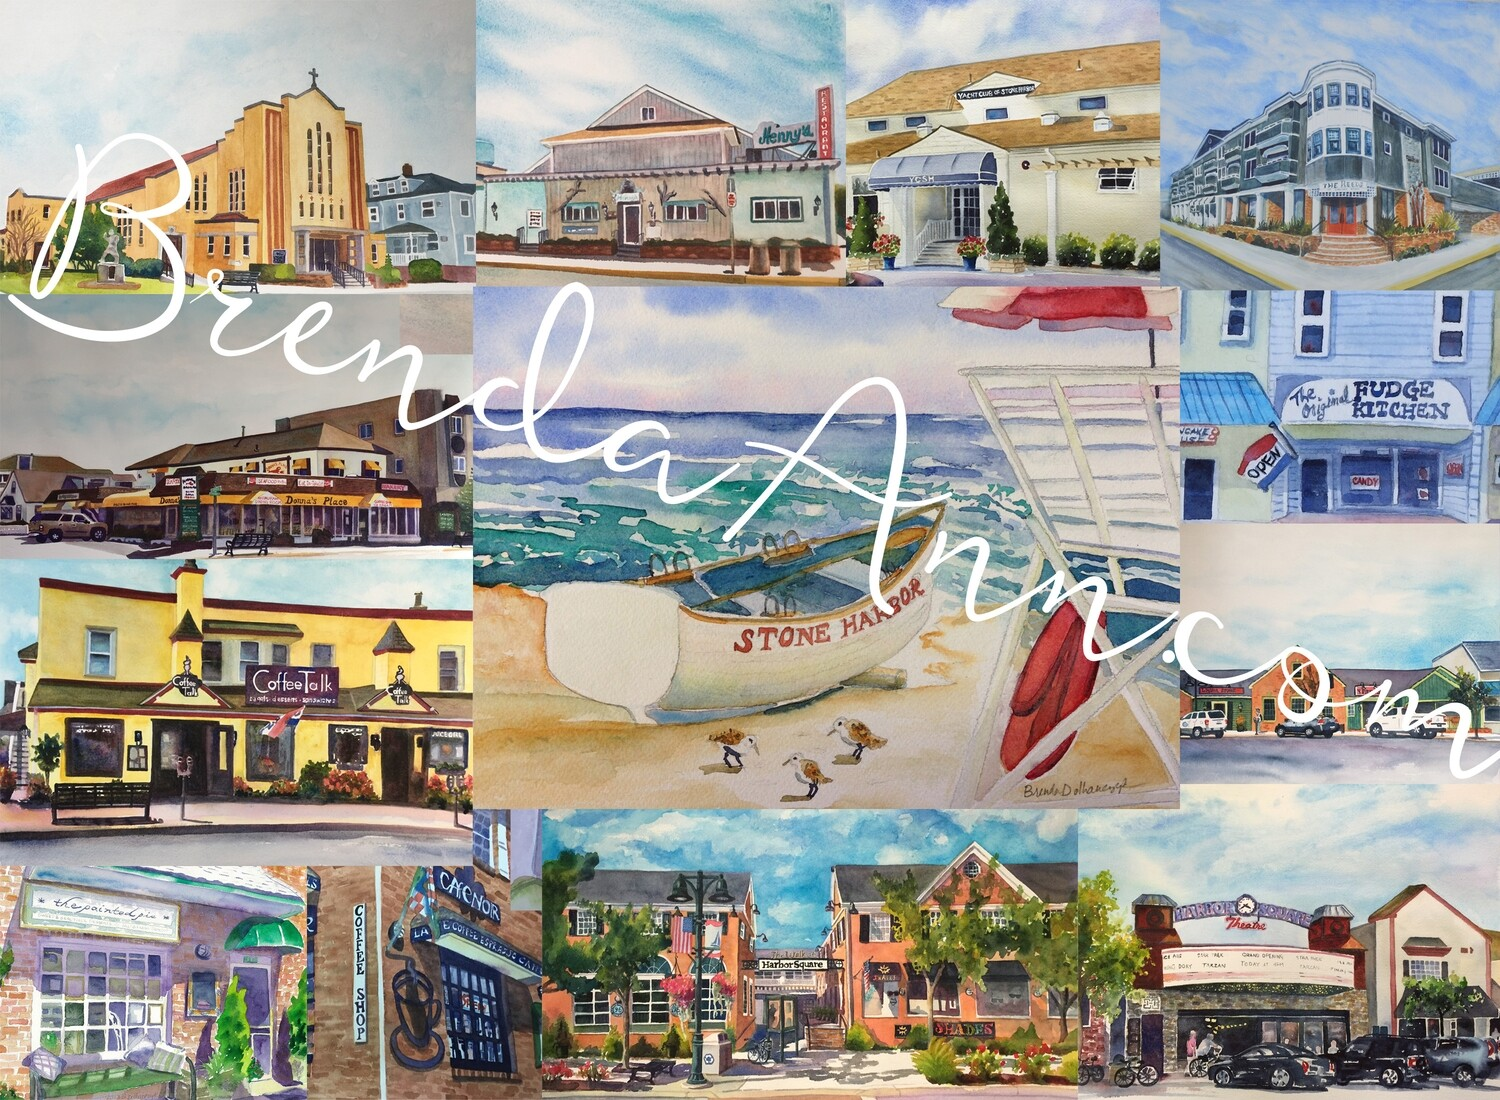 Stone Harbor, NJ - Hand Signed Archival Watercolor Print